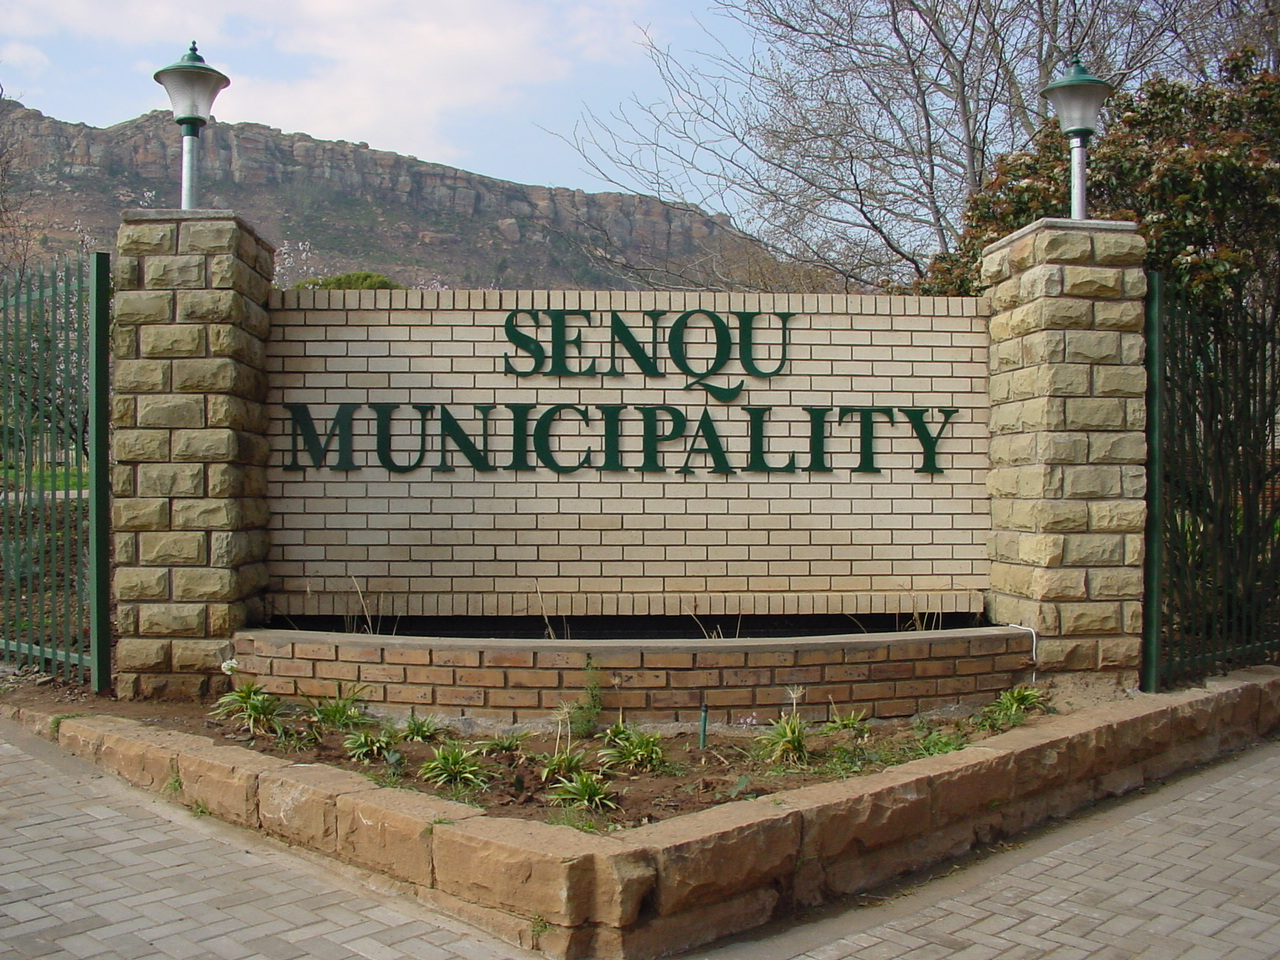 Garden wall with the name of Senqu Municipality